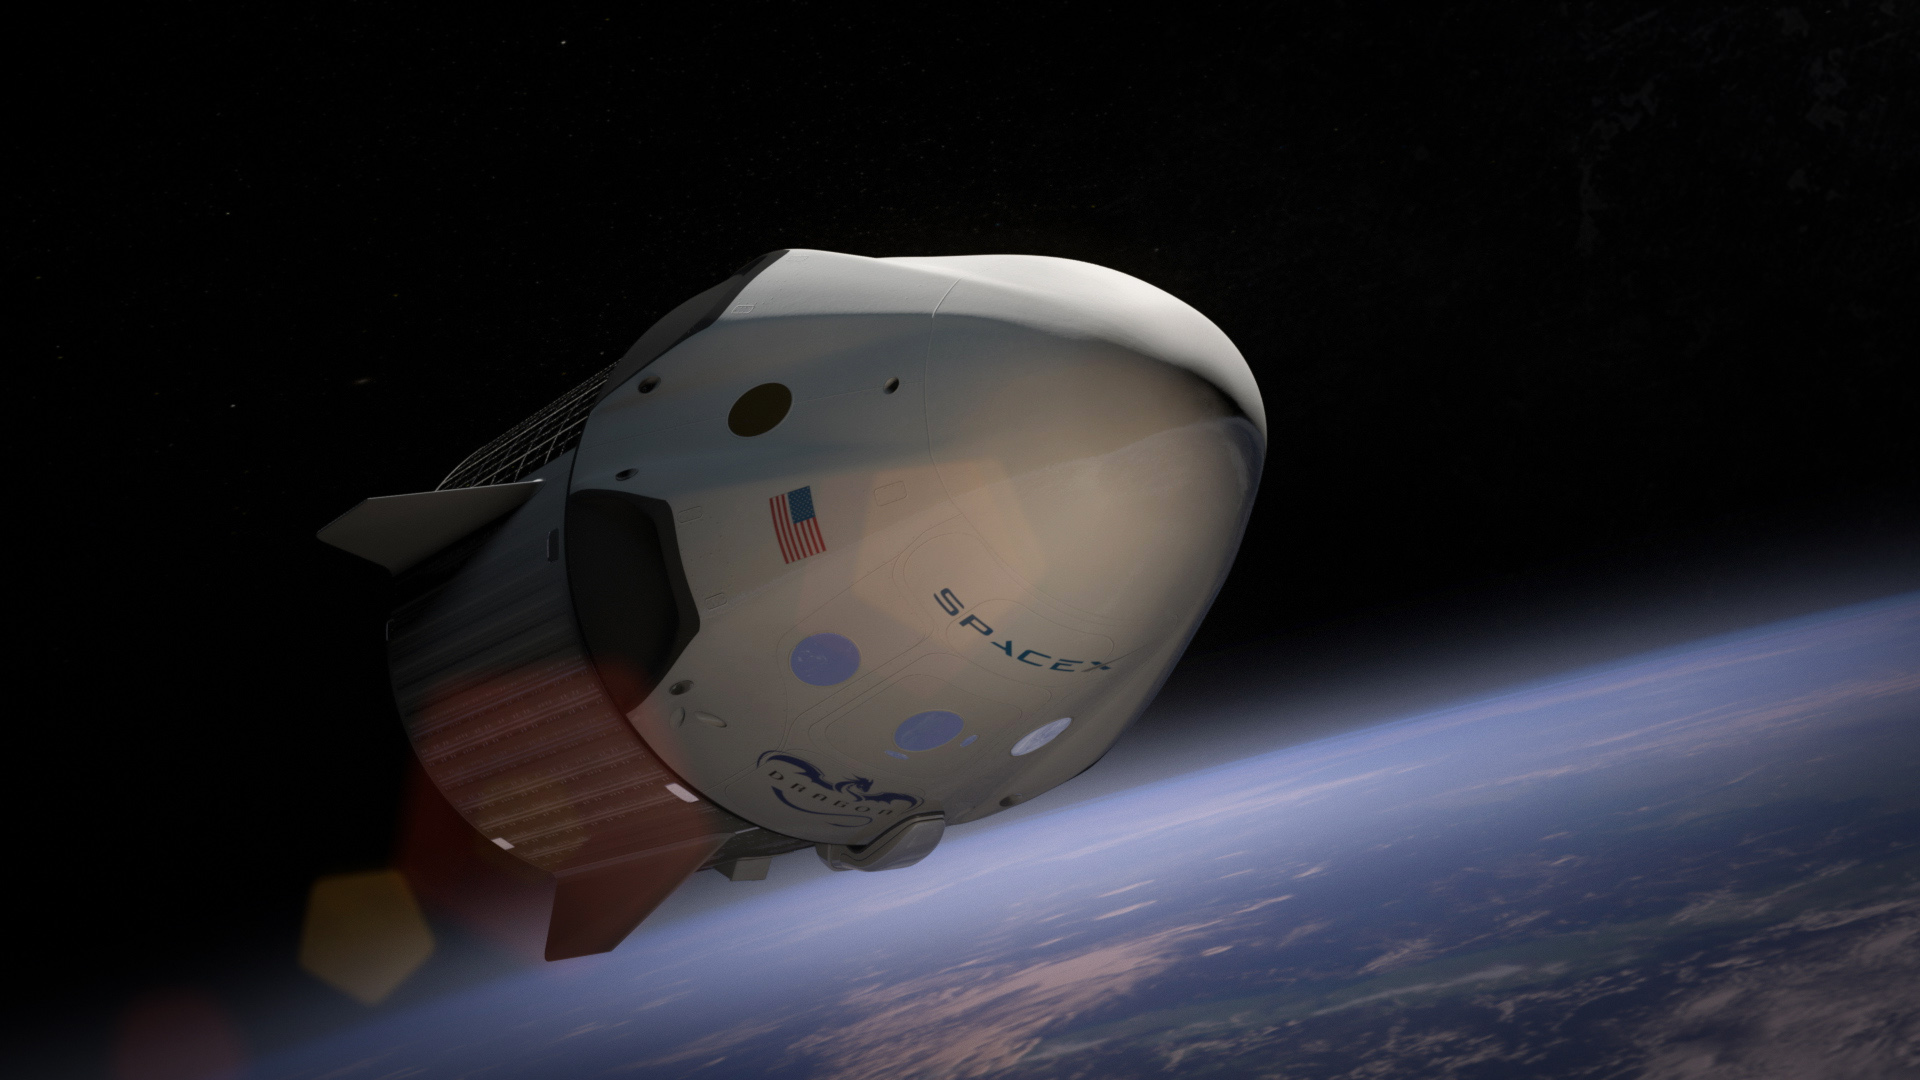 An artist's rendering of the Dragon V2 spacecraft in orbit. Elon Musk announced that in 2018 SpaceX will fly two private citizens to the moon in its Dragon spacecraft, Feb 27, 2017.